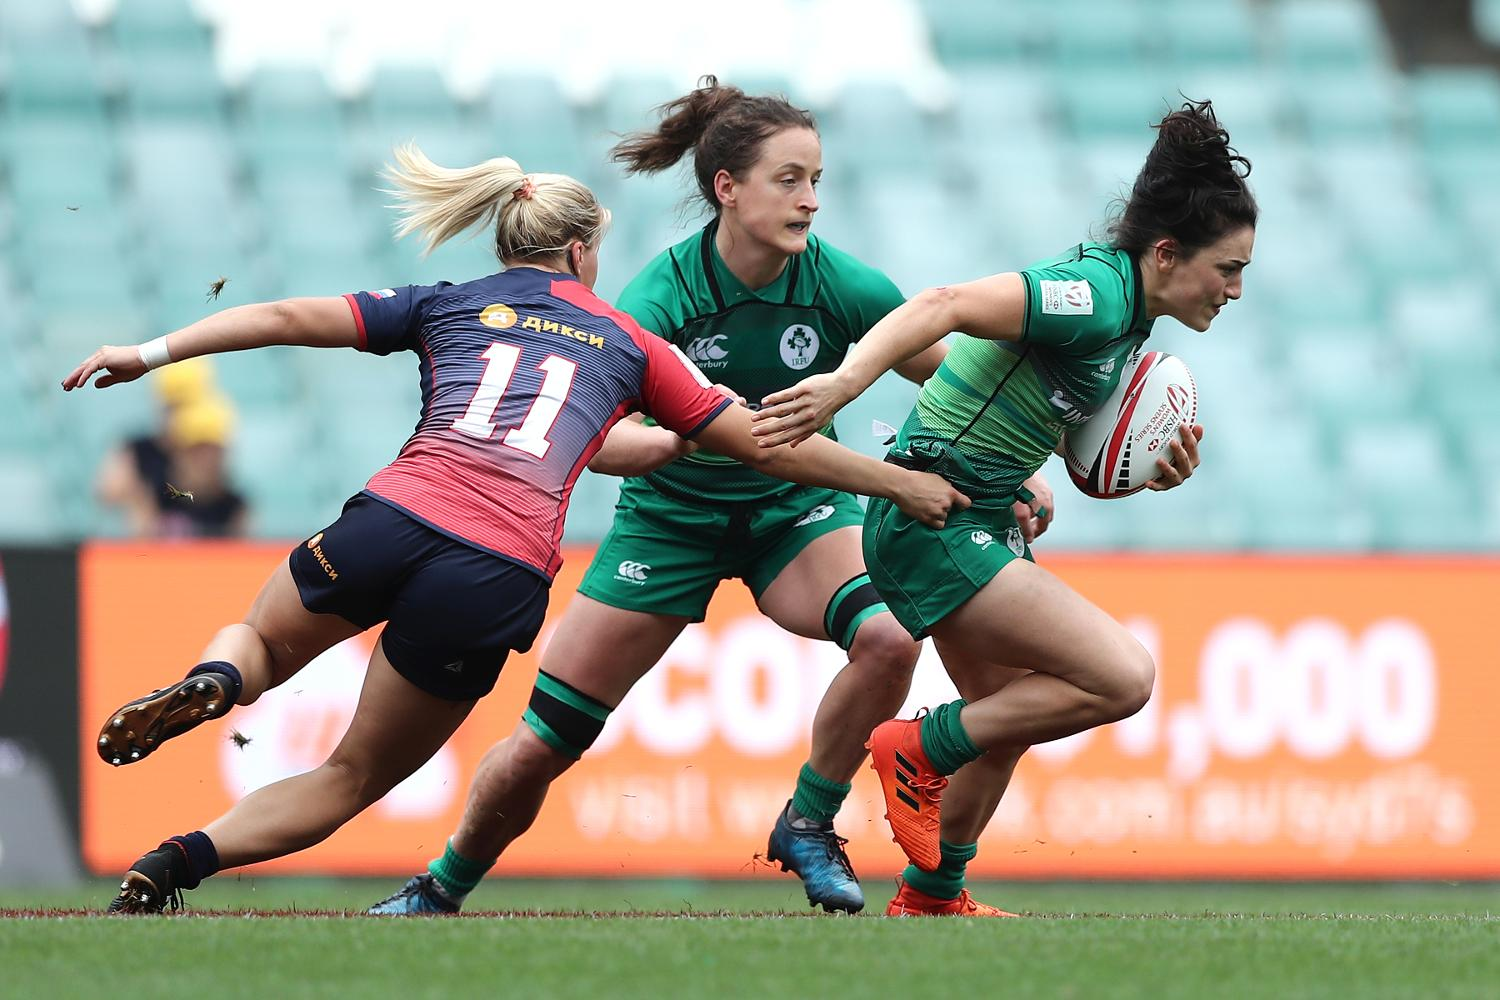 HSBC World Rugby Women's Sevens Series - Sydney 2018